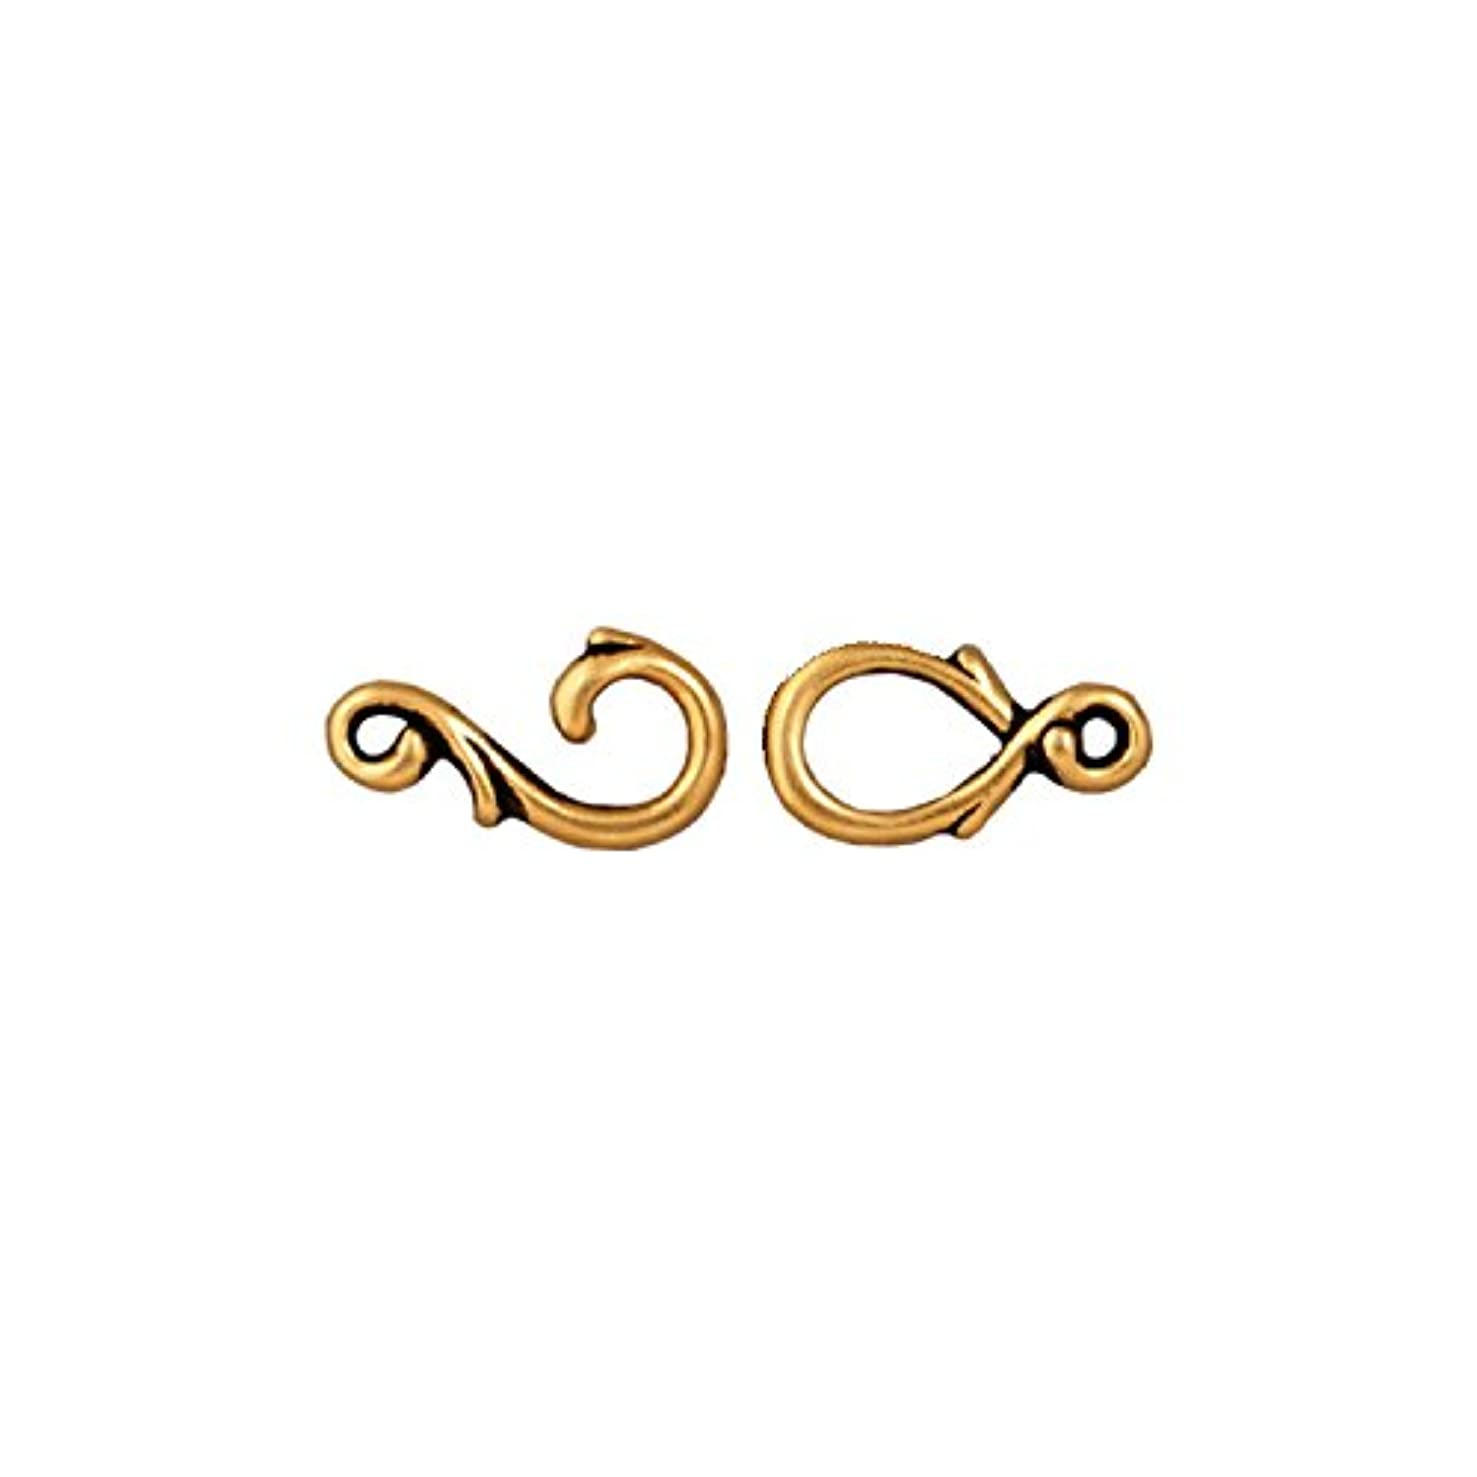 TierraCast Hook Eye Vine, 7x23mm, Antiqued 22K Gold Plated Pewter, 2-Set/Pack